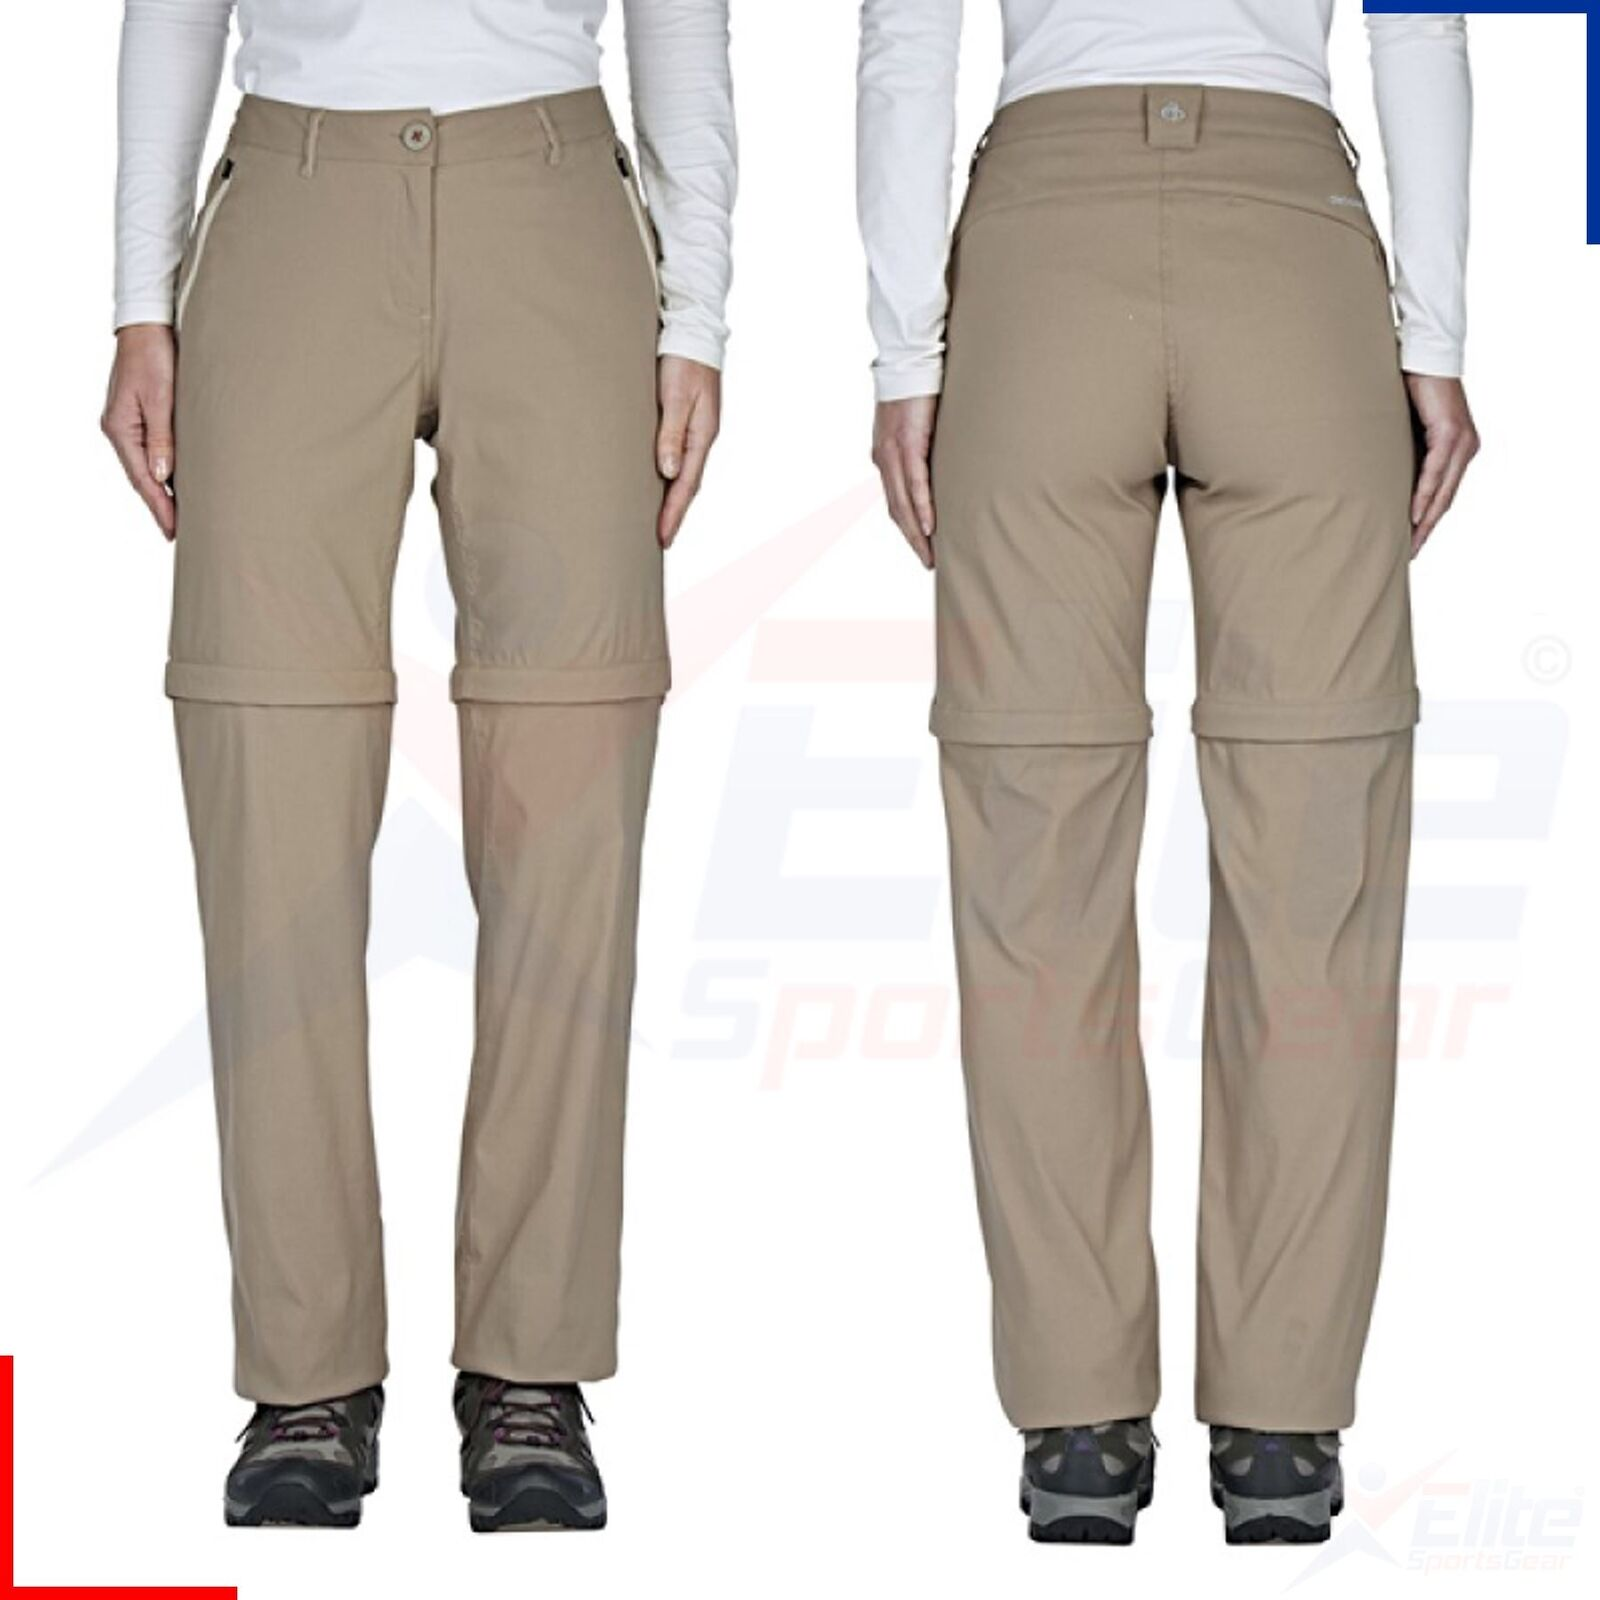 Craghoppers Ladies Kiwi Pro Stretch Walking Trousers  Zip Off Shorts -